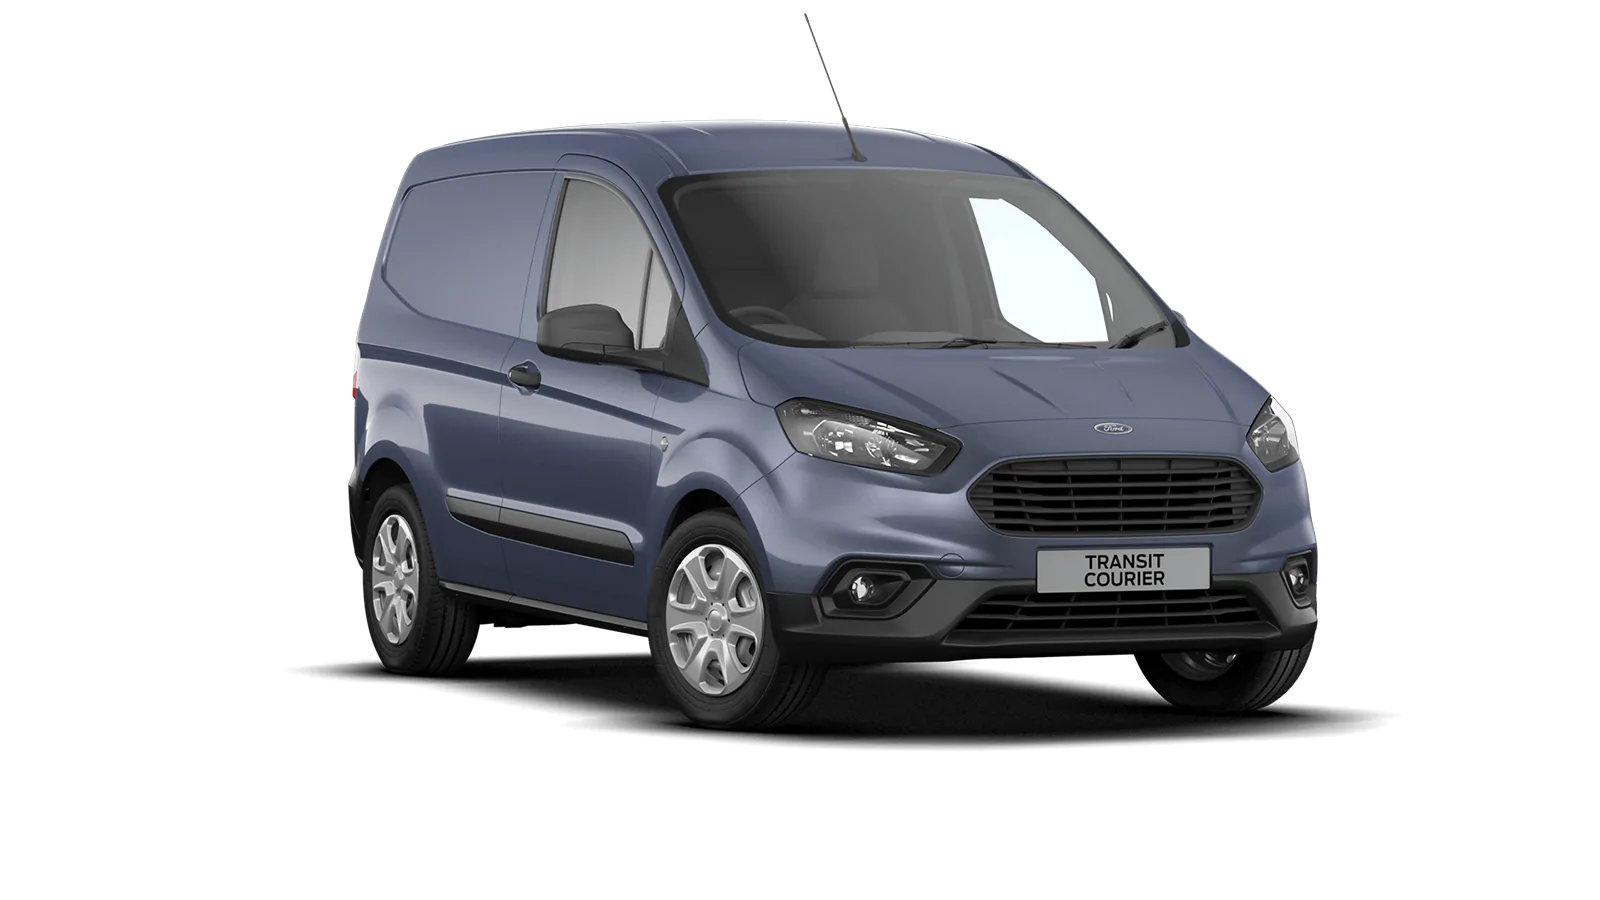 191 Ford Transit Courier Trend 1.5TD 100PS Blue, Boland Motors